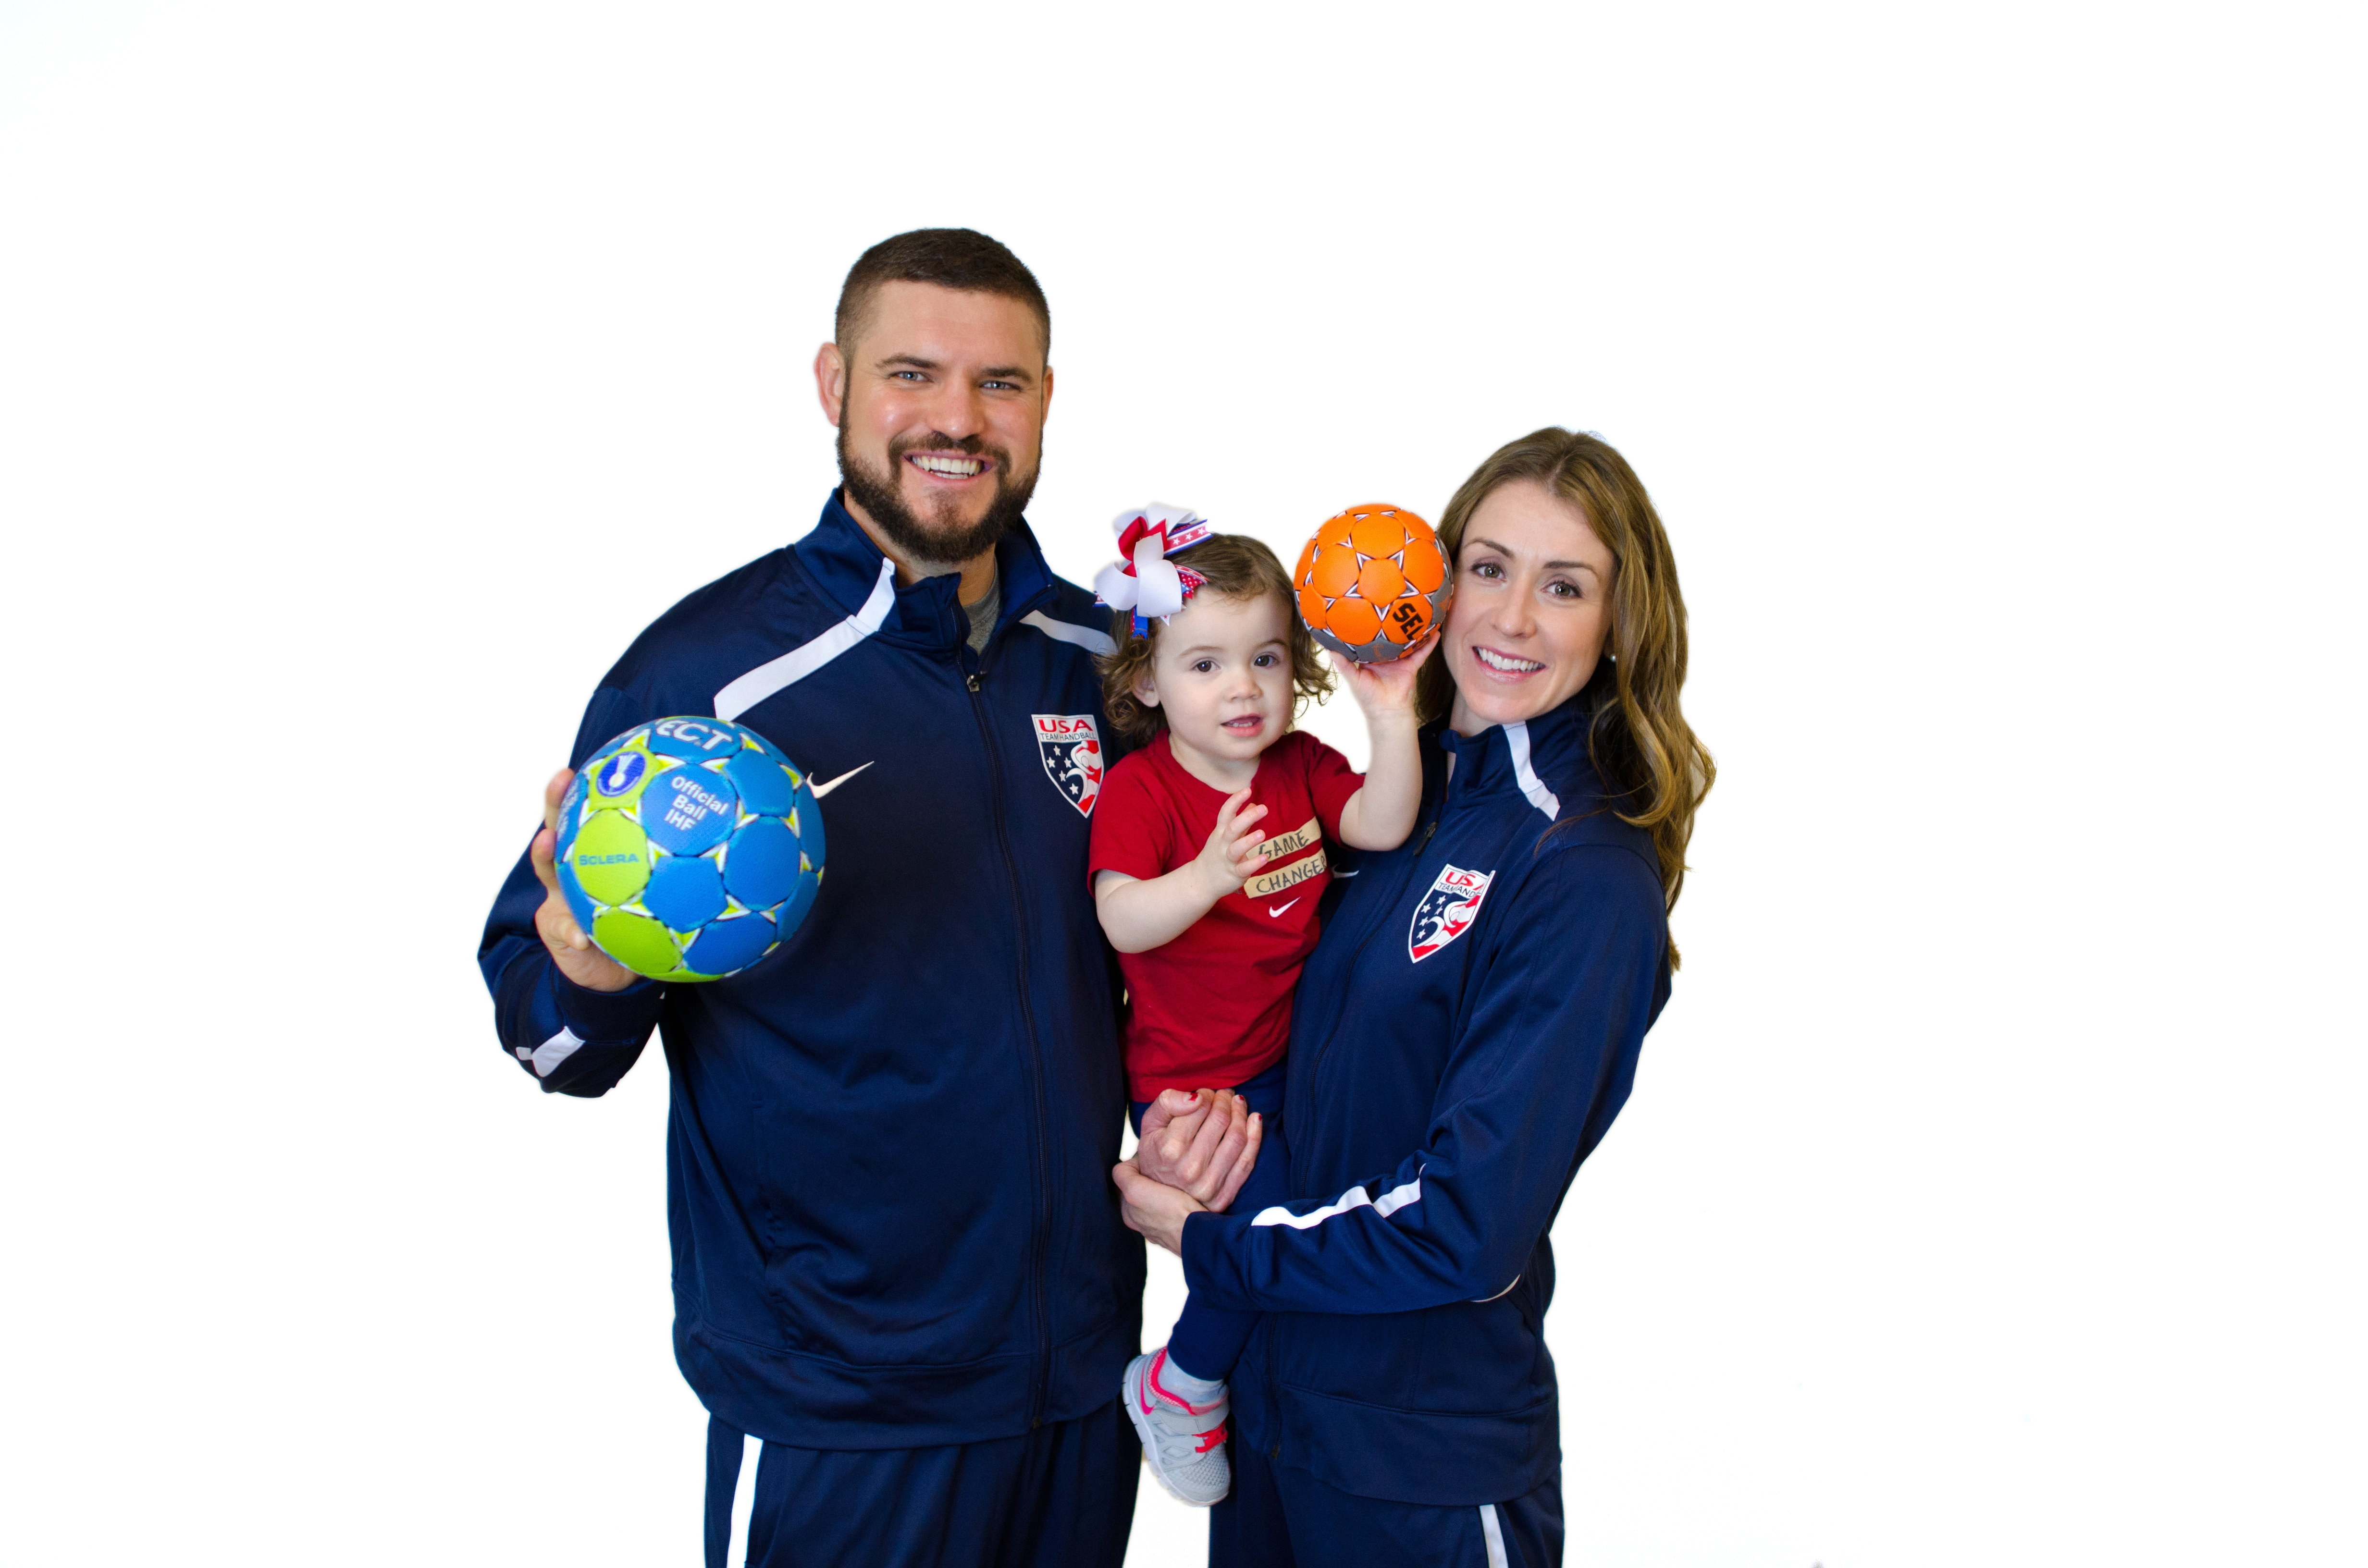 USA Team Handball Fithian Family